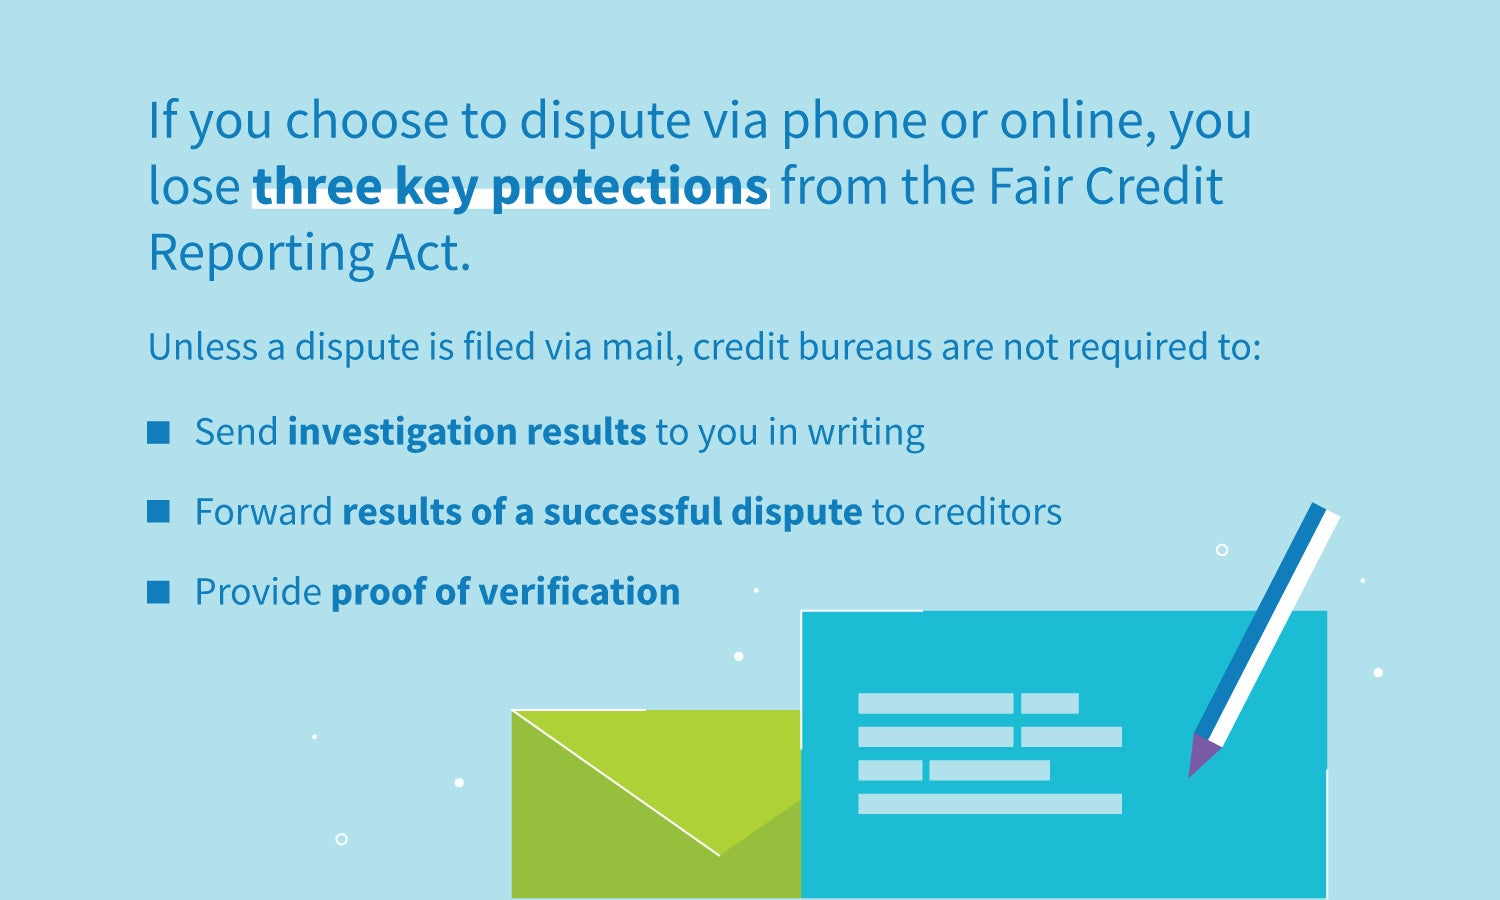 If you choose to dispute via phone or online, you lose three key protections from the FCRA